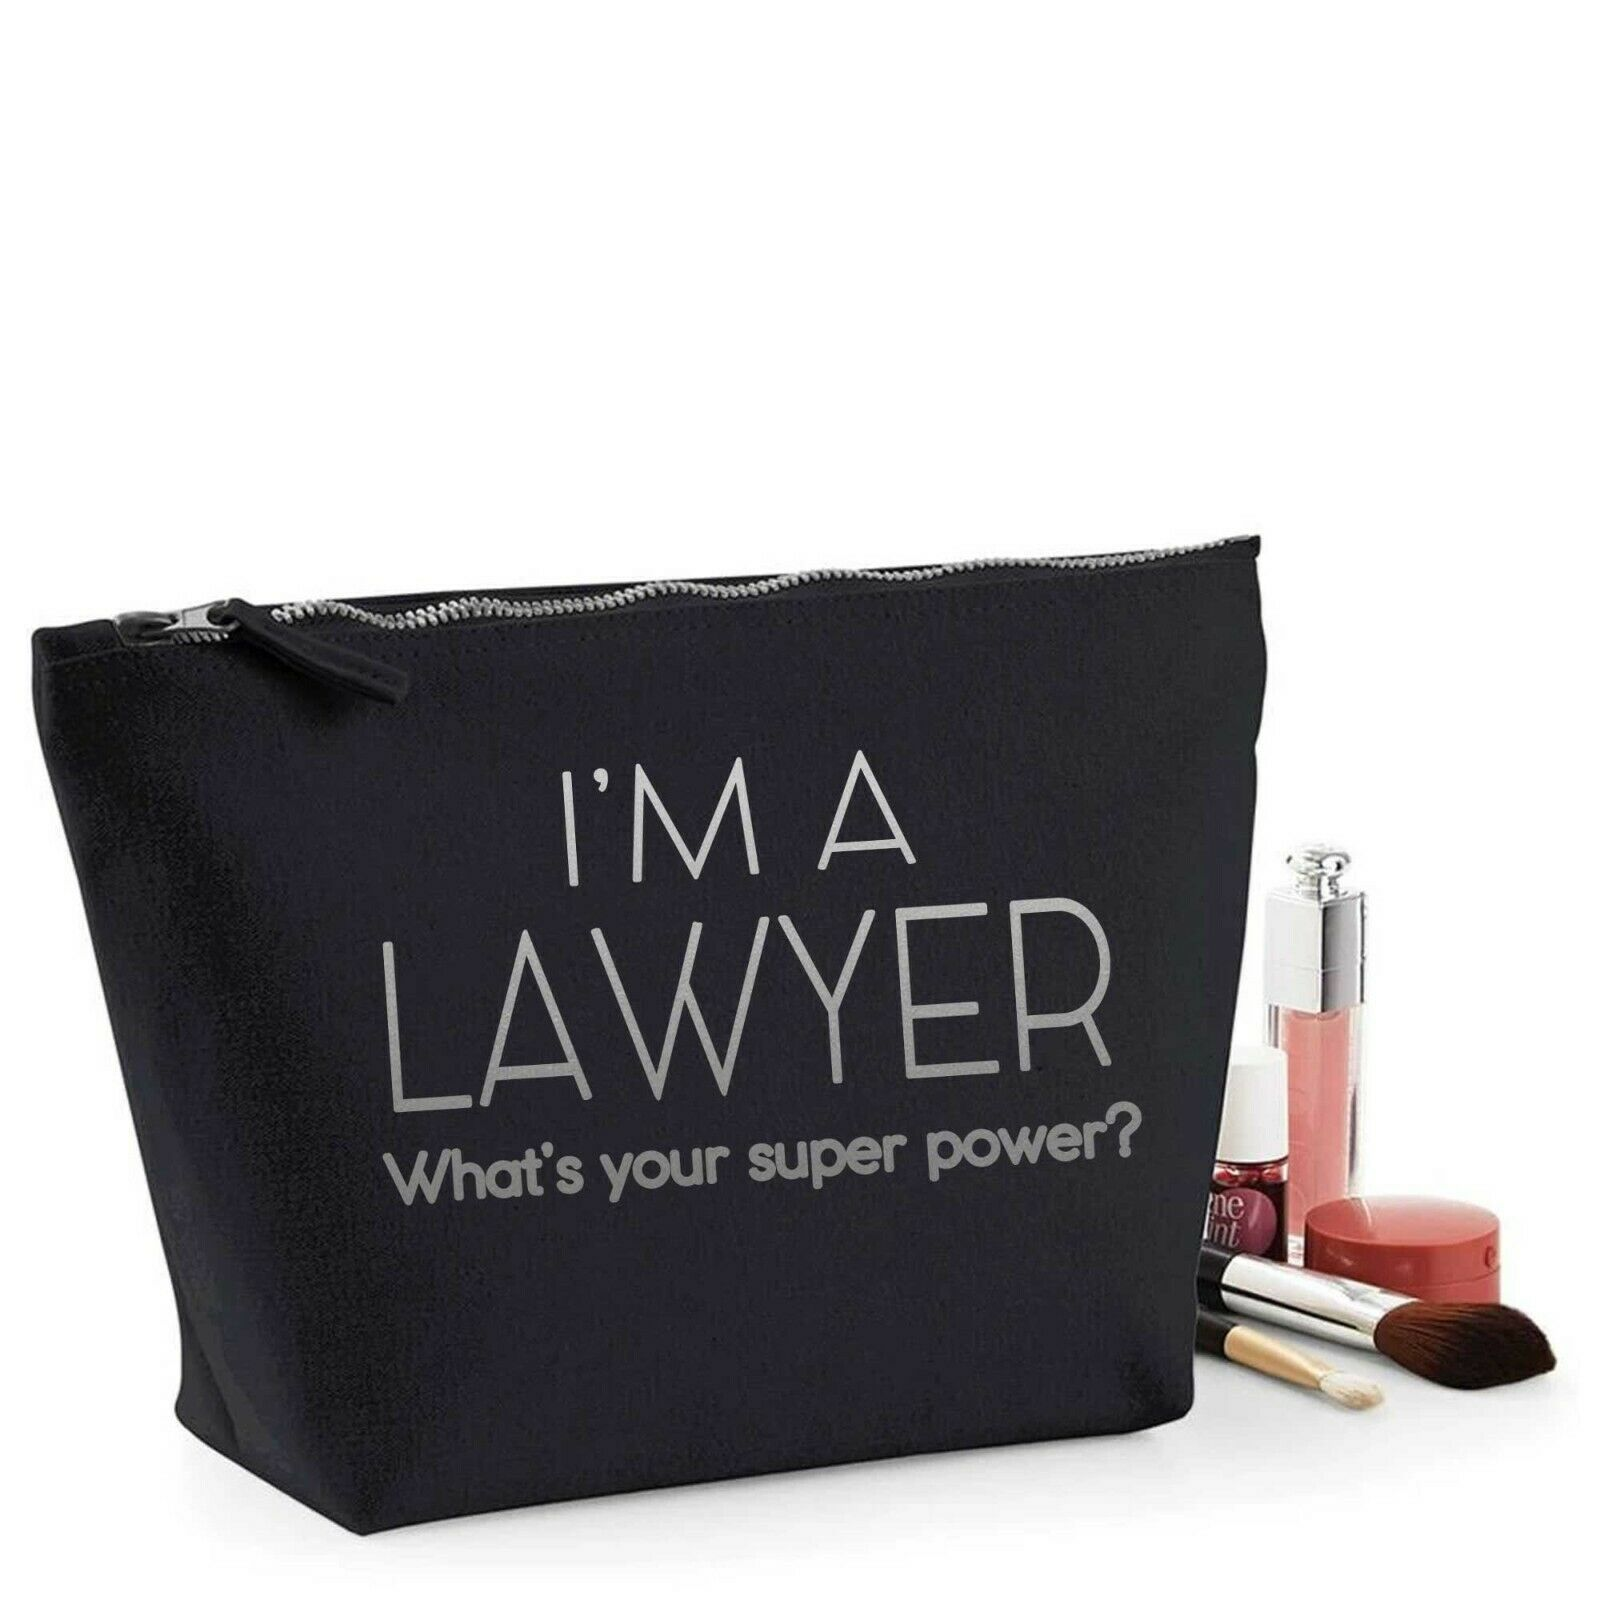 Lawyer Thank You Gift Women's Make Up Makeup Accessory Bag Silver Print